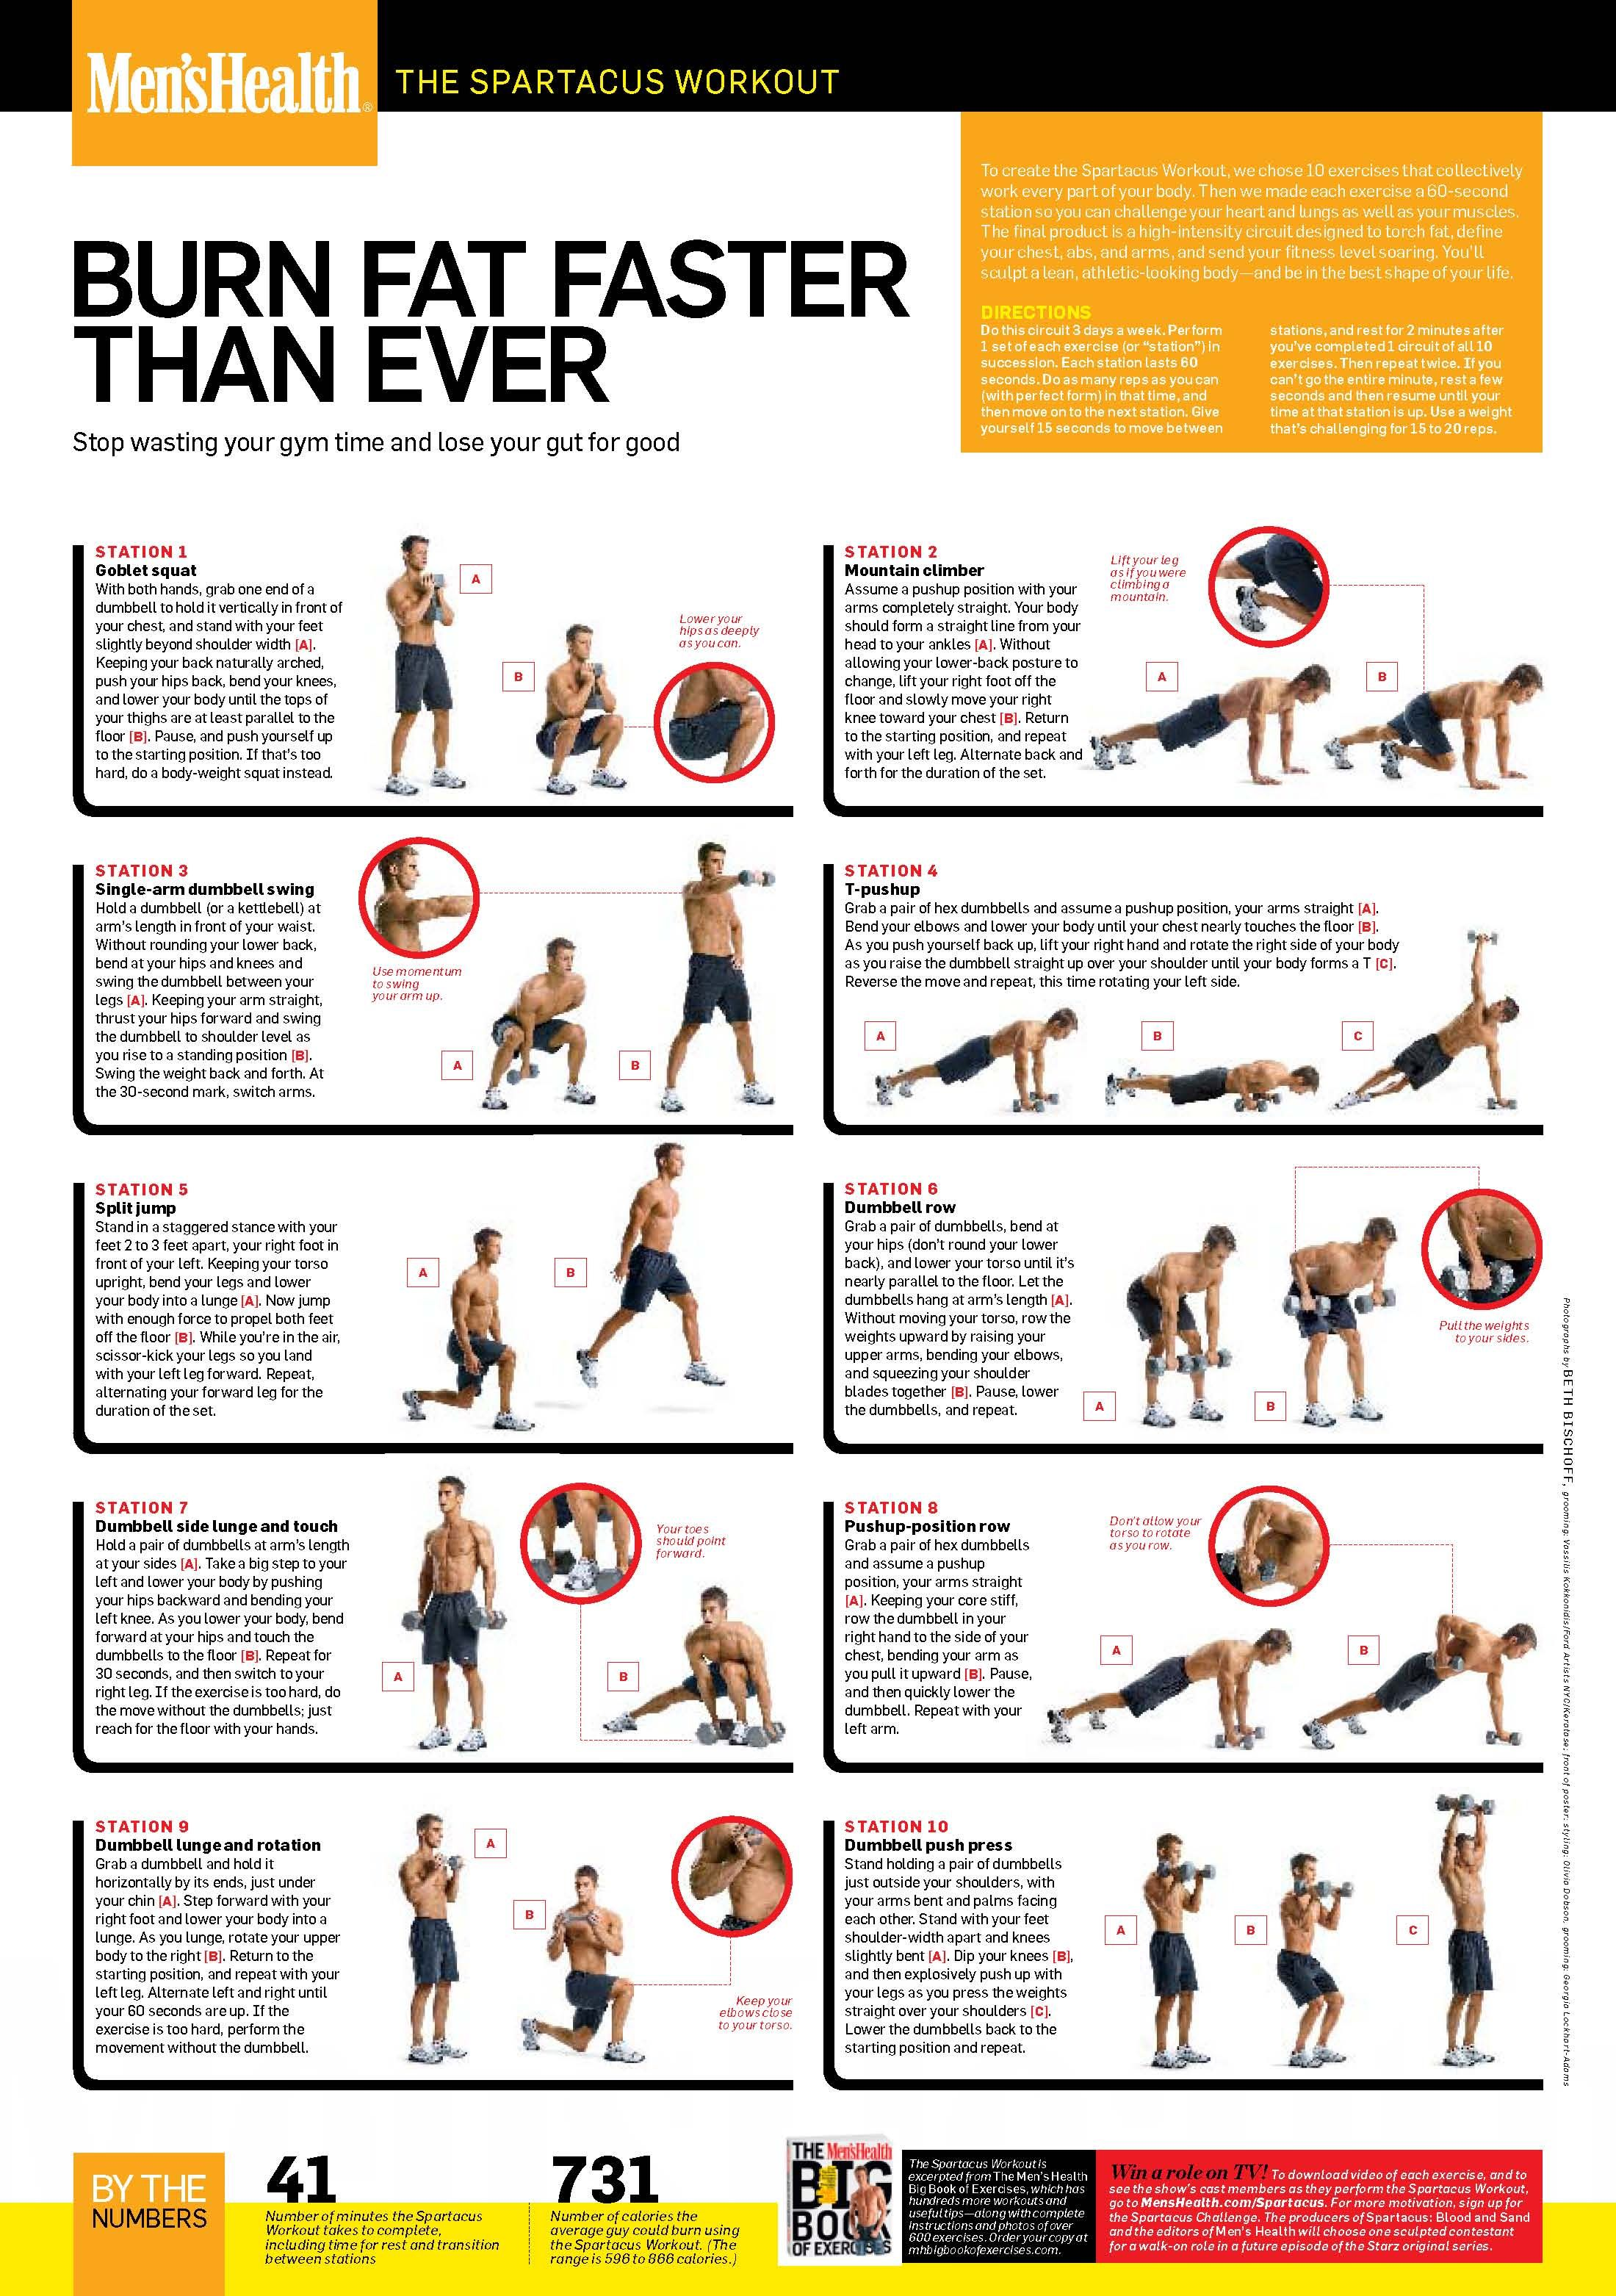 8 Cardio Exercises That Burn More Calories than Running forecasting